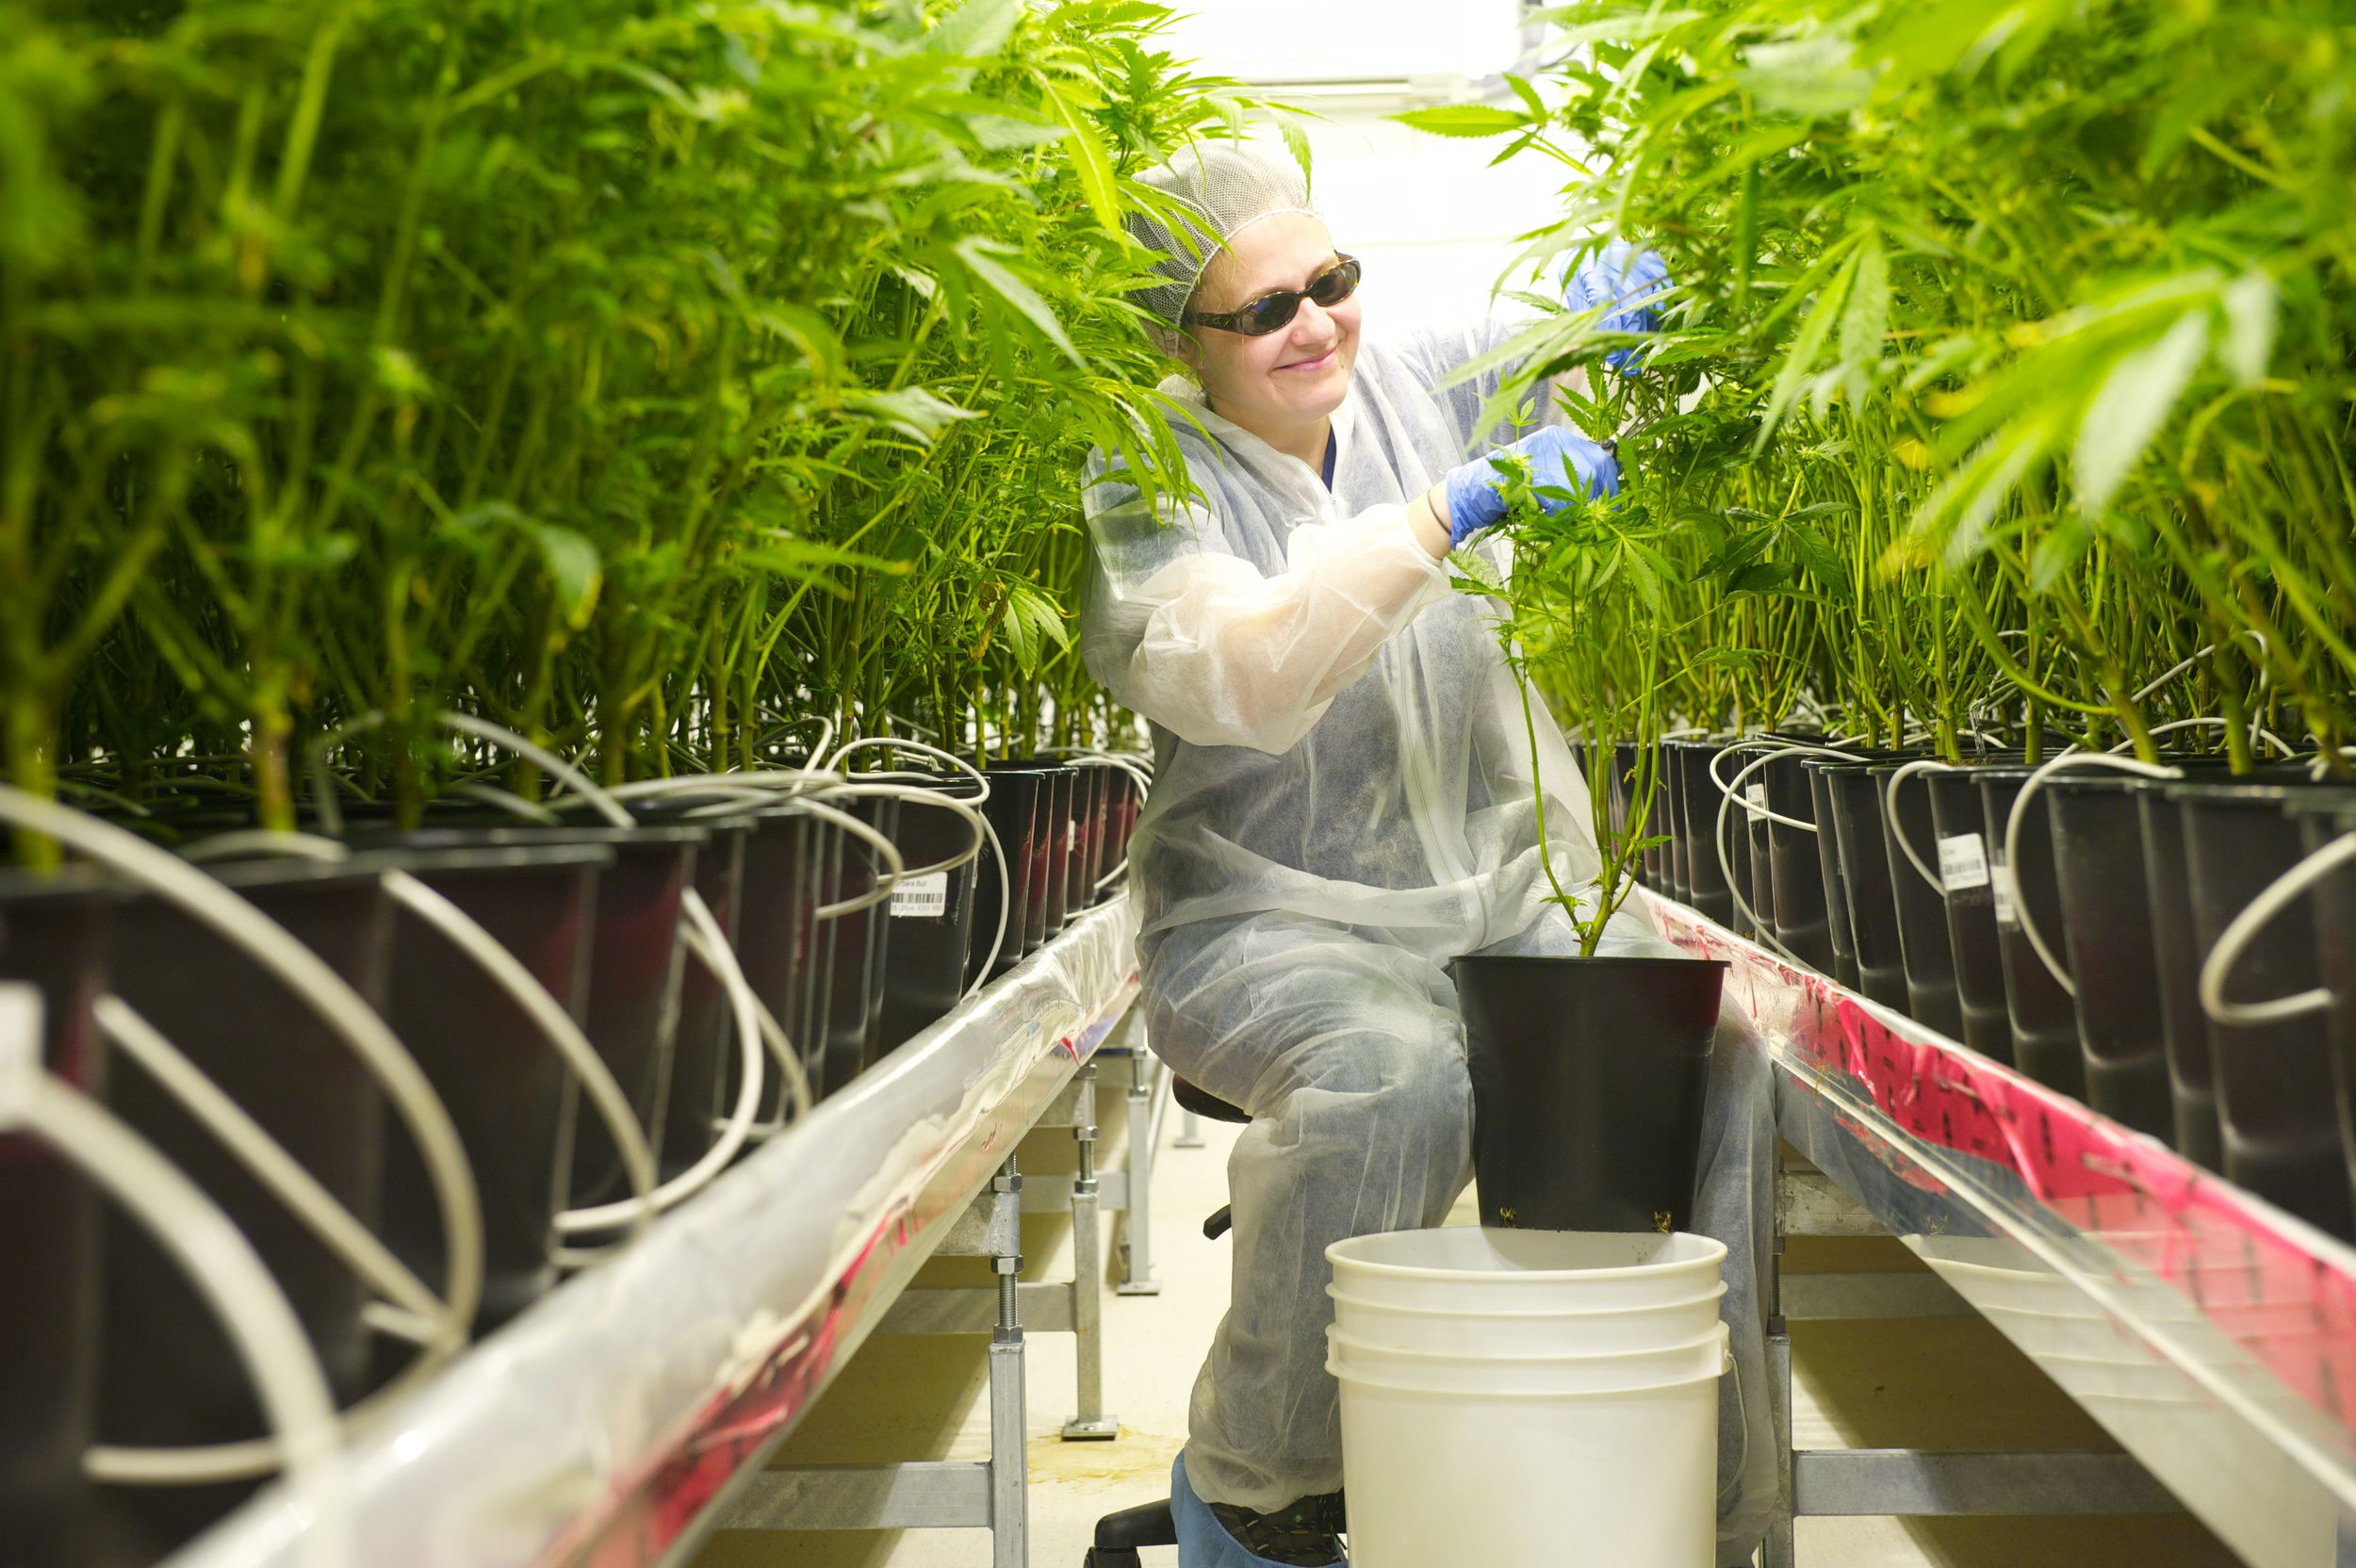 Tilray vegetative plants